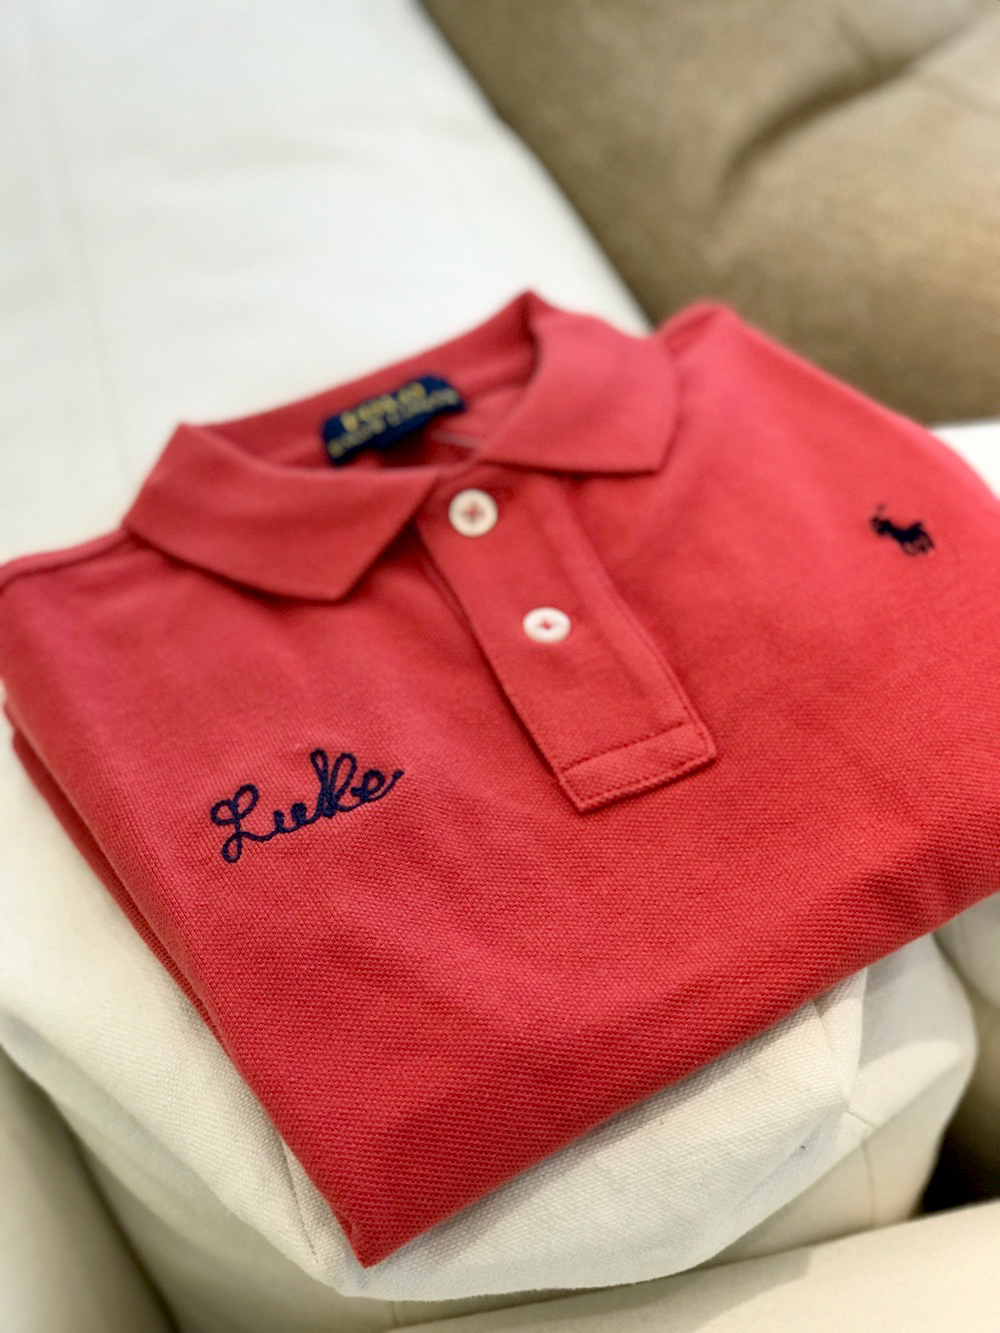 POLO RALPH LAUREN BEVERLY HILLS